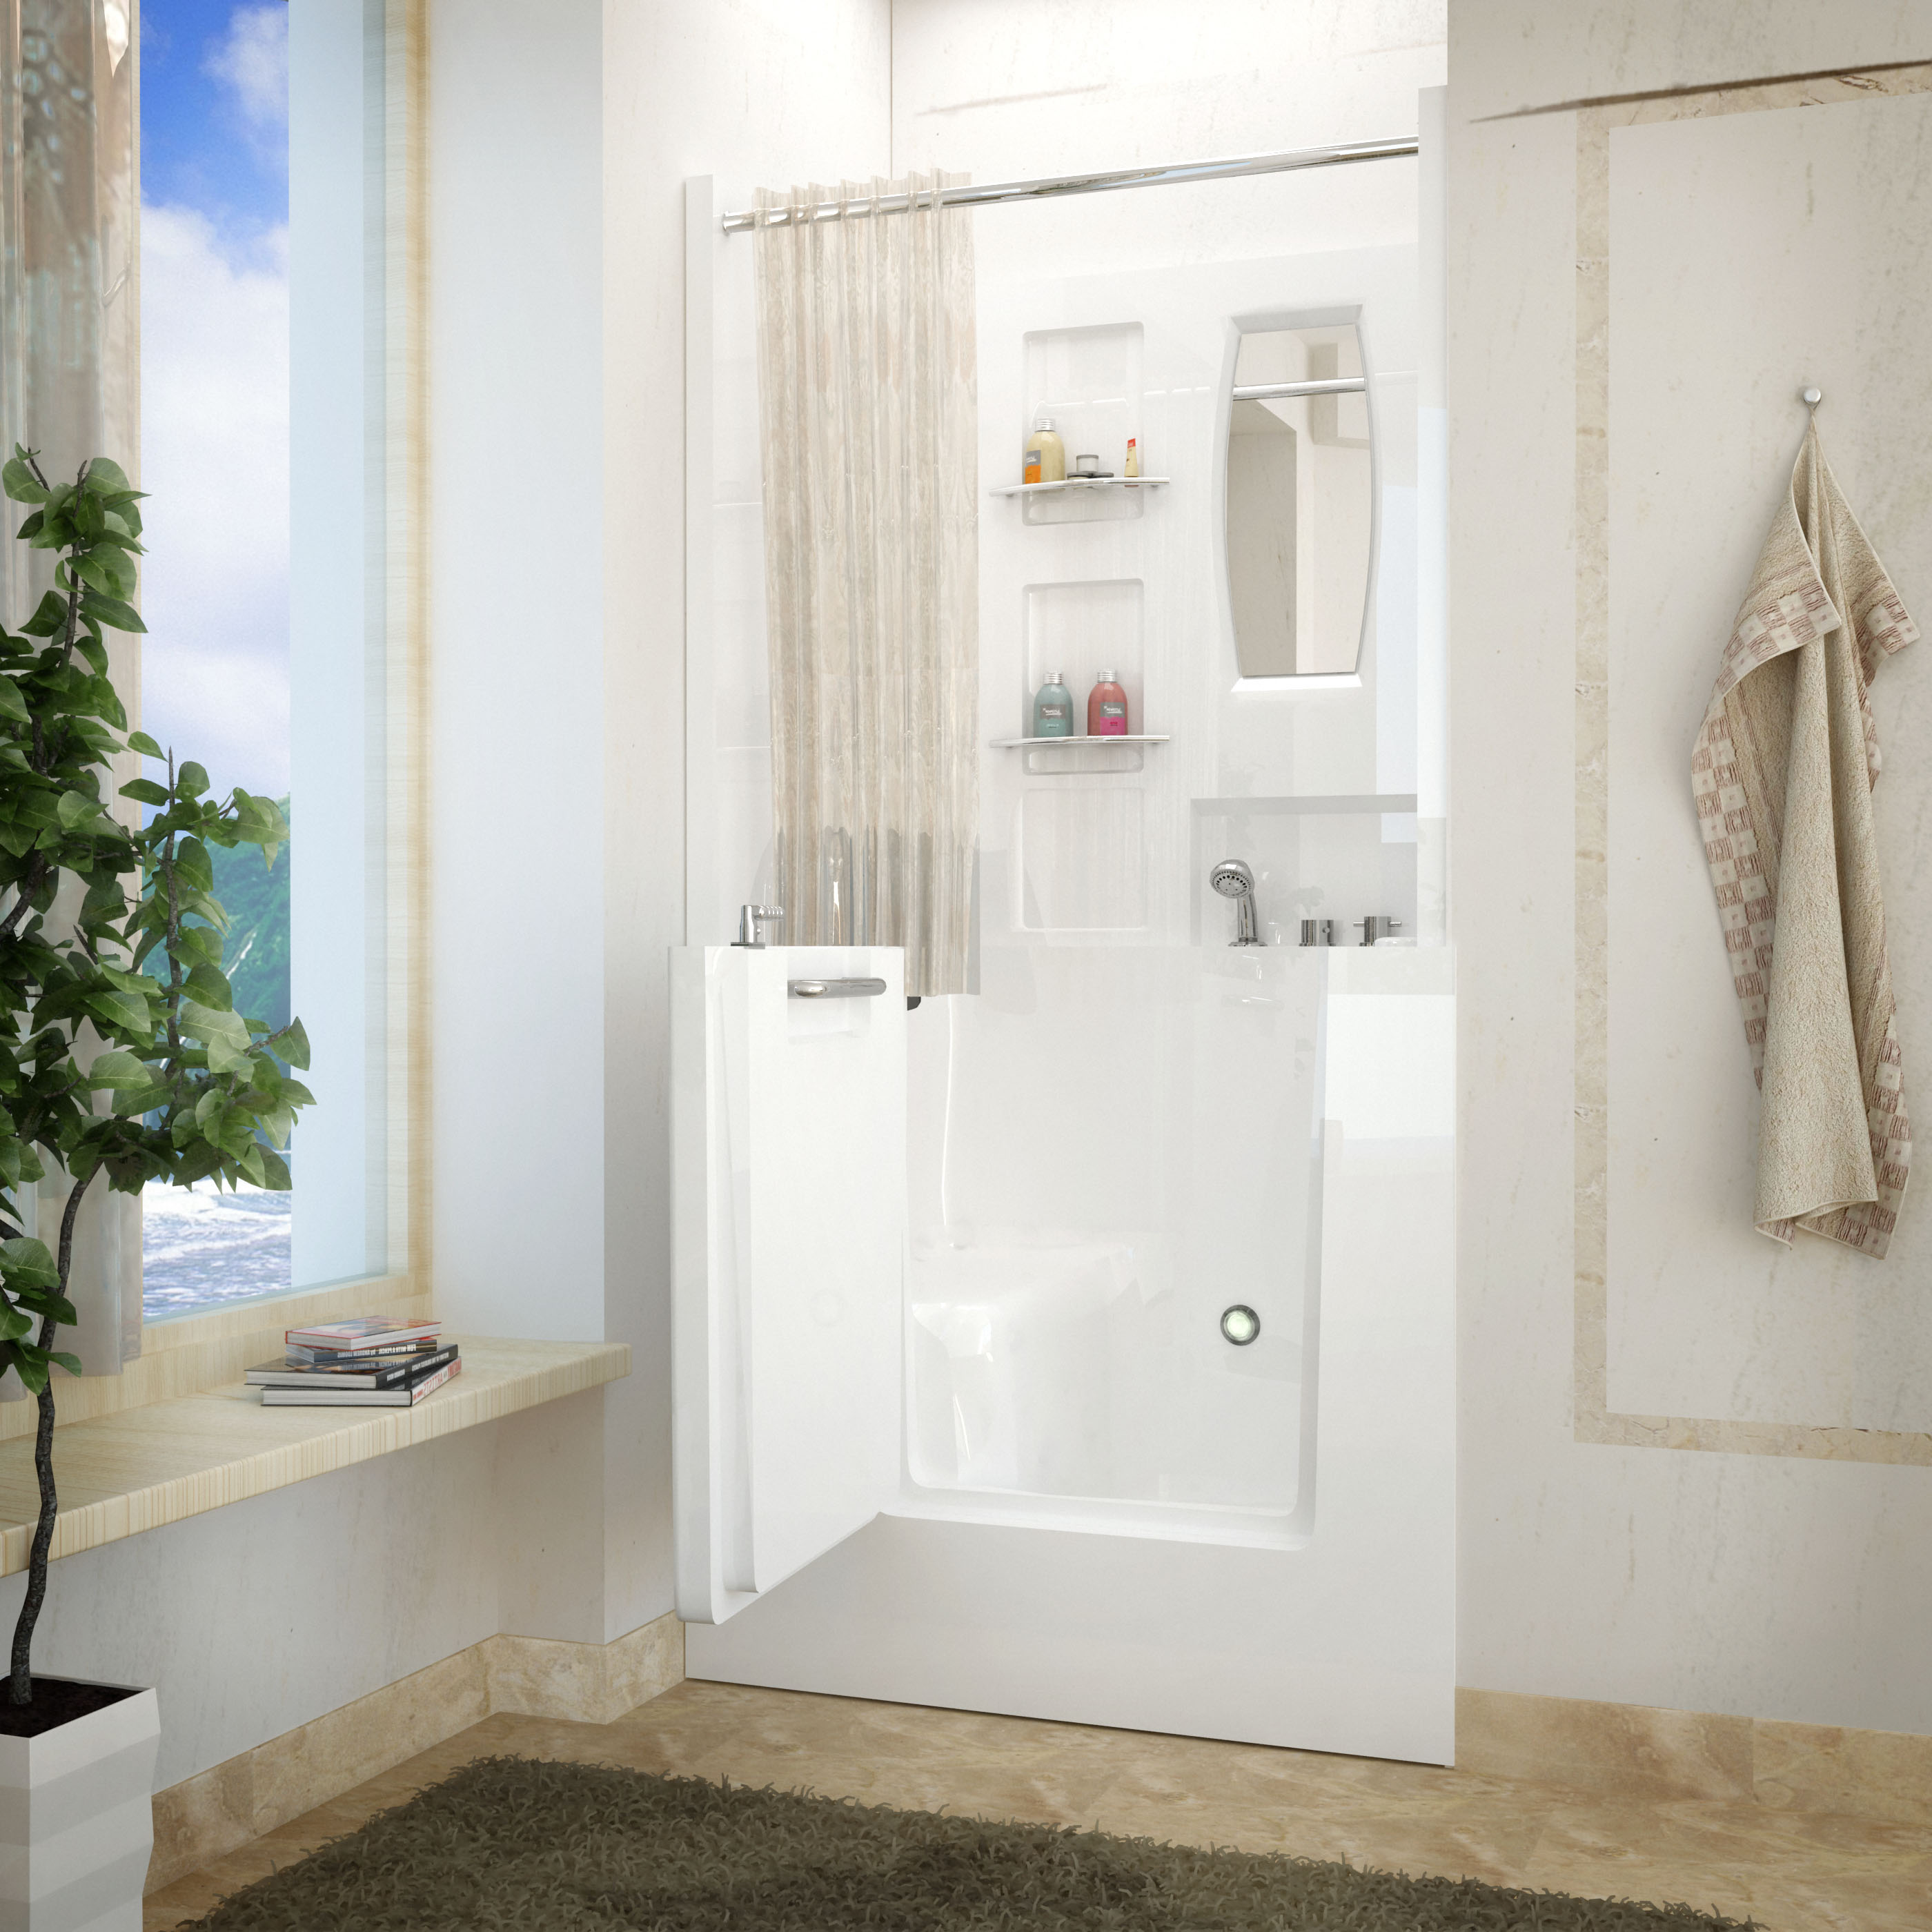 Venzi 40 x 31 Right Drain White Walk In Bathtub Shower Enclosure